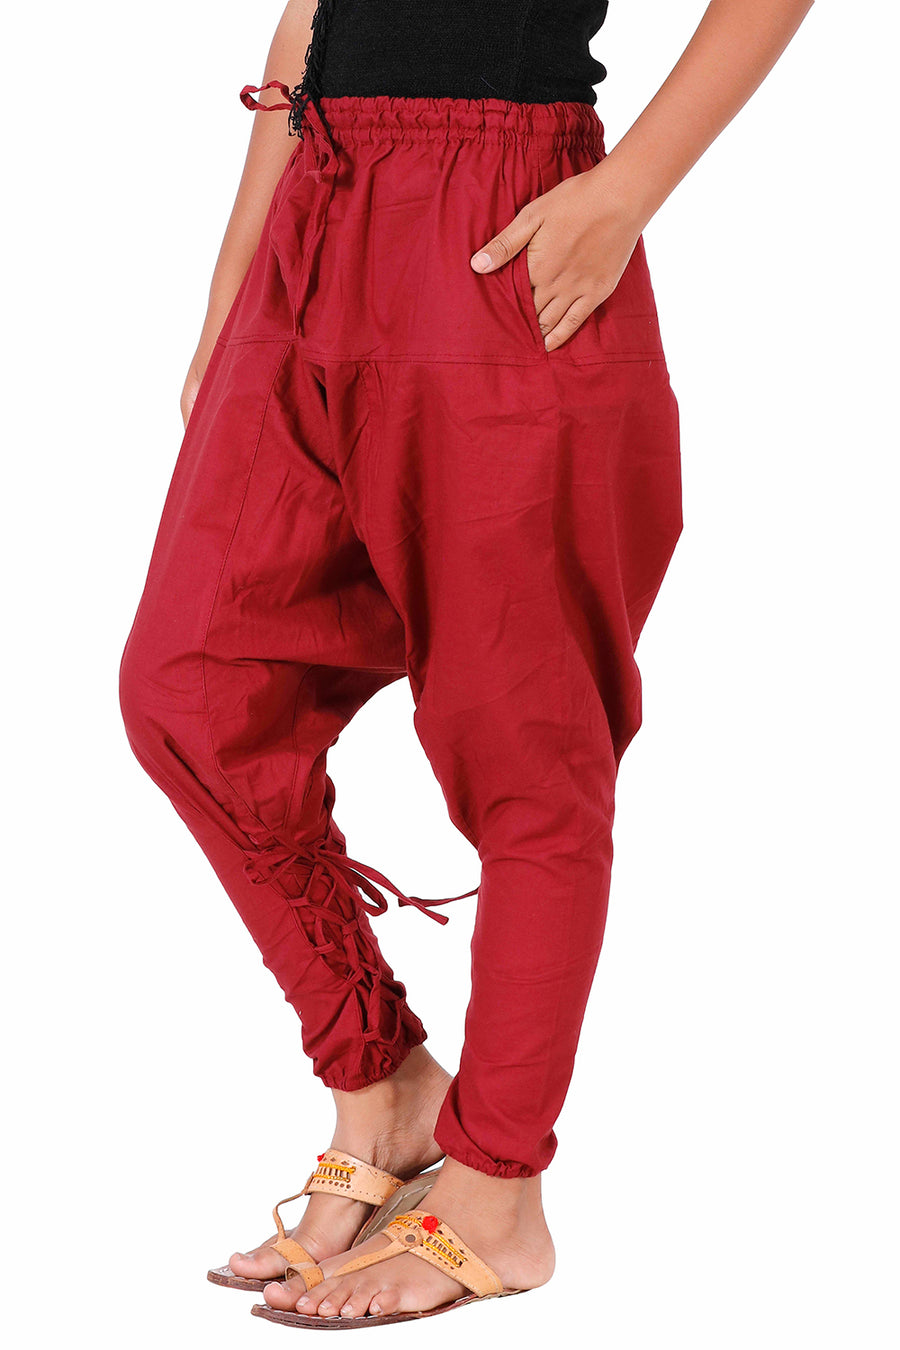 Kids Harem Pants, Kids Parachute Pants, Maroon Harem Pants for kids, mc hammer pants for kids, slouch pants kids, cotton harem pants kids, kids harem sweatpants,kids drop crotch pants, boys harem pants, girls harem pants, harem pants for kids boys,boys pants, girls harem pants, parachute pants girls, parachute pants boys